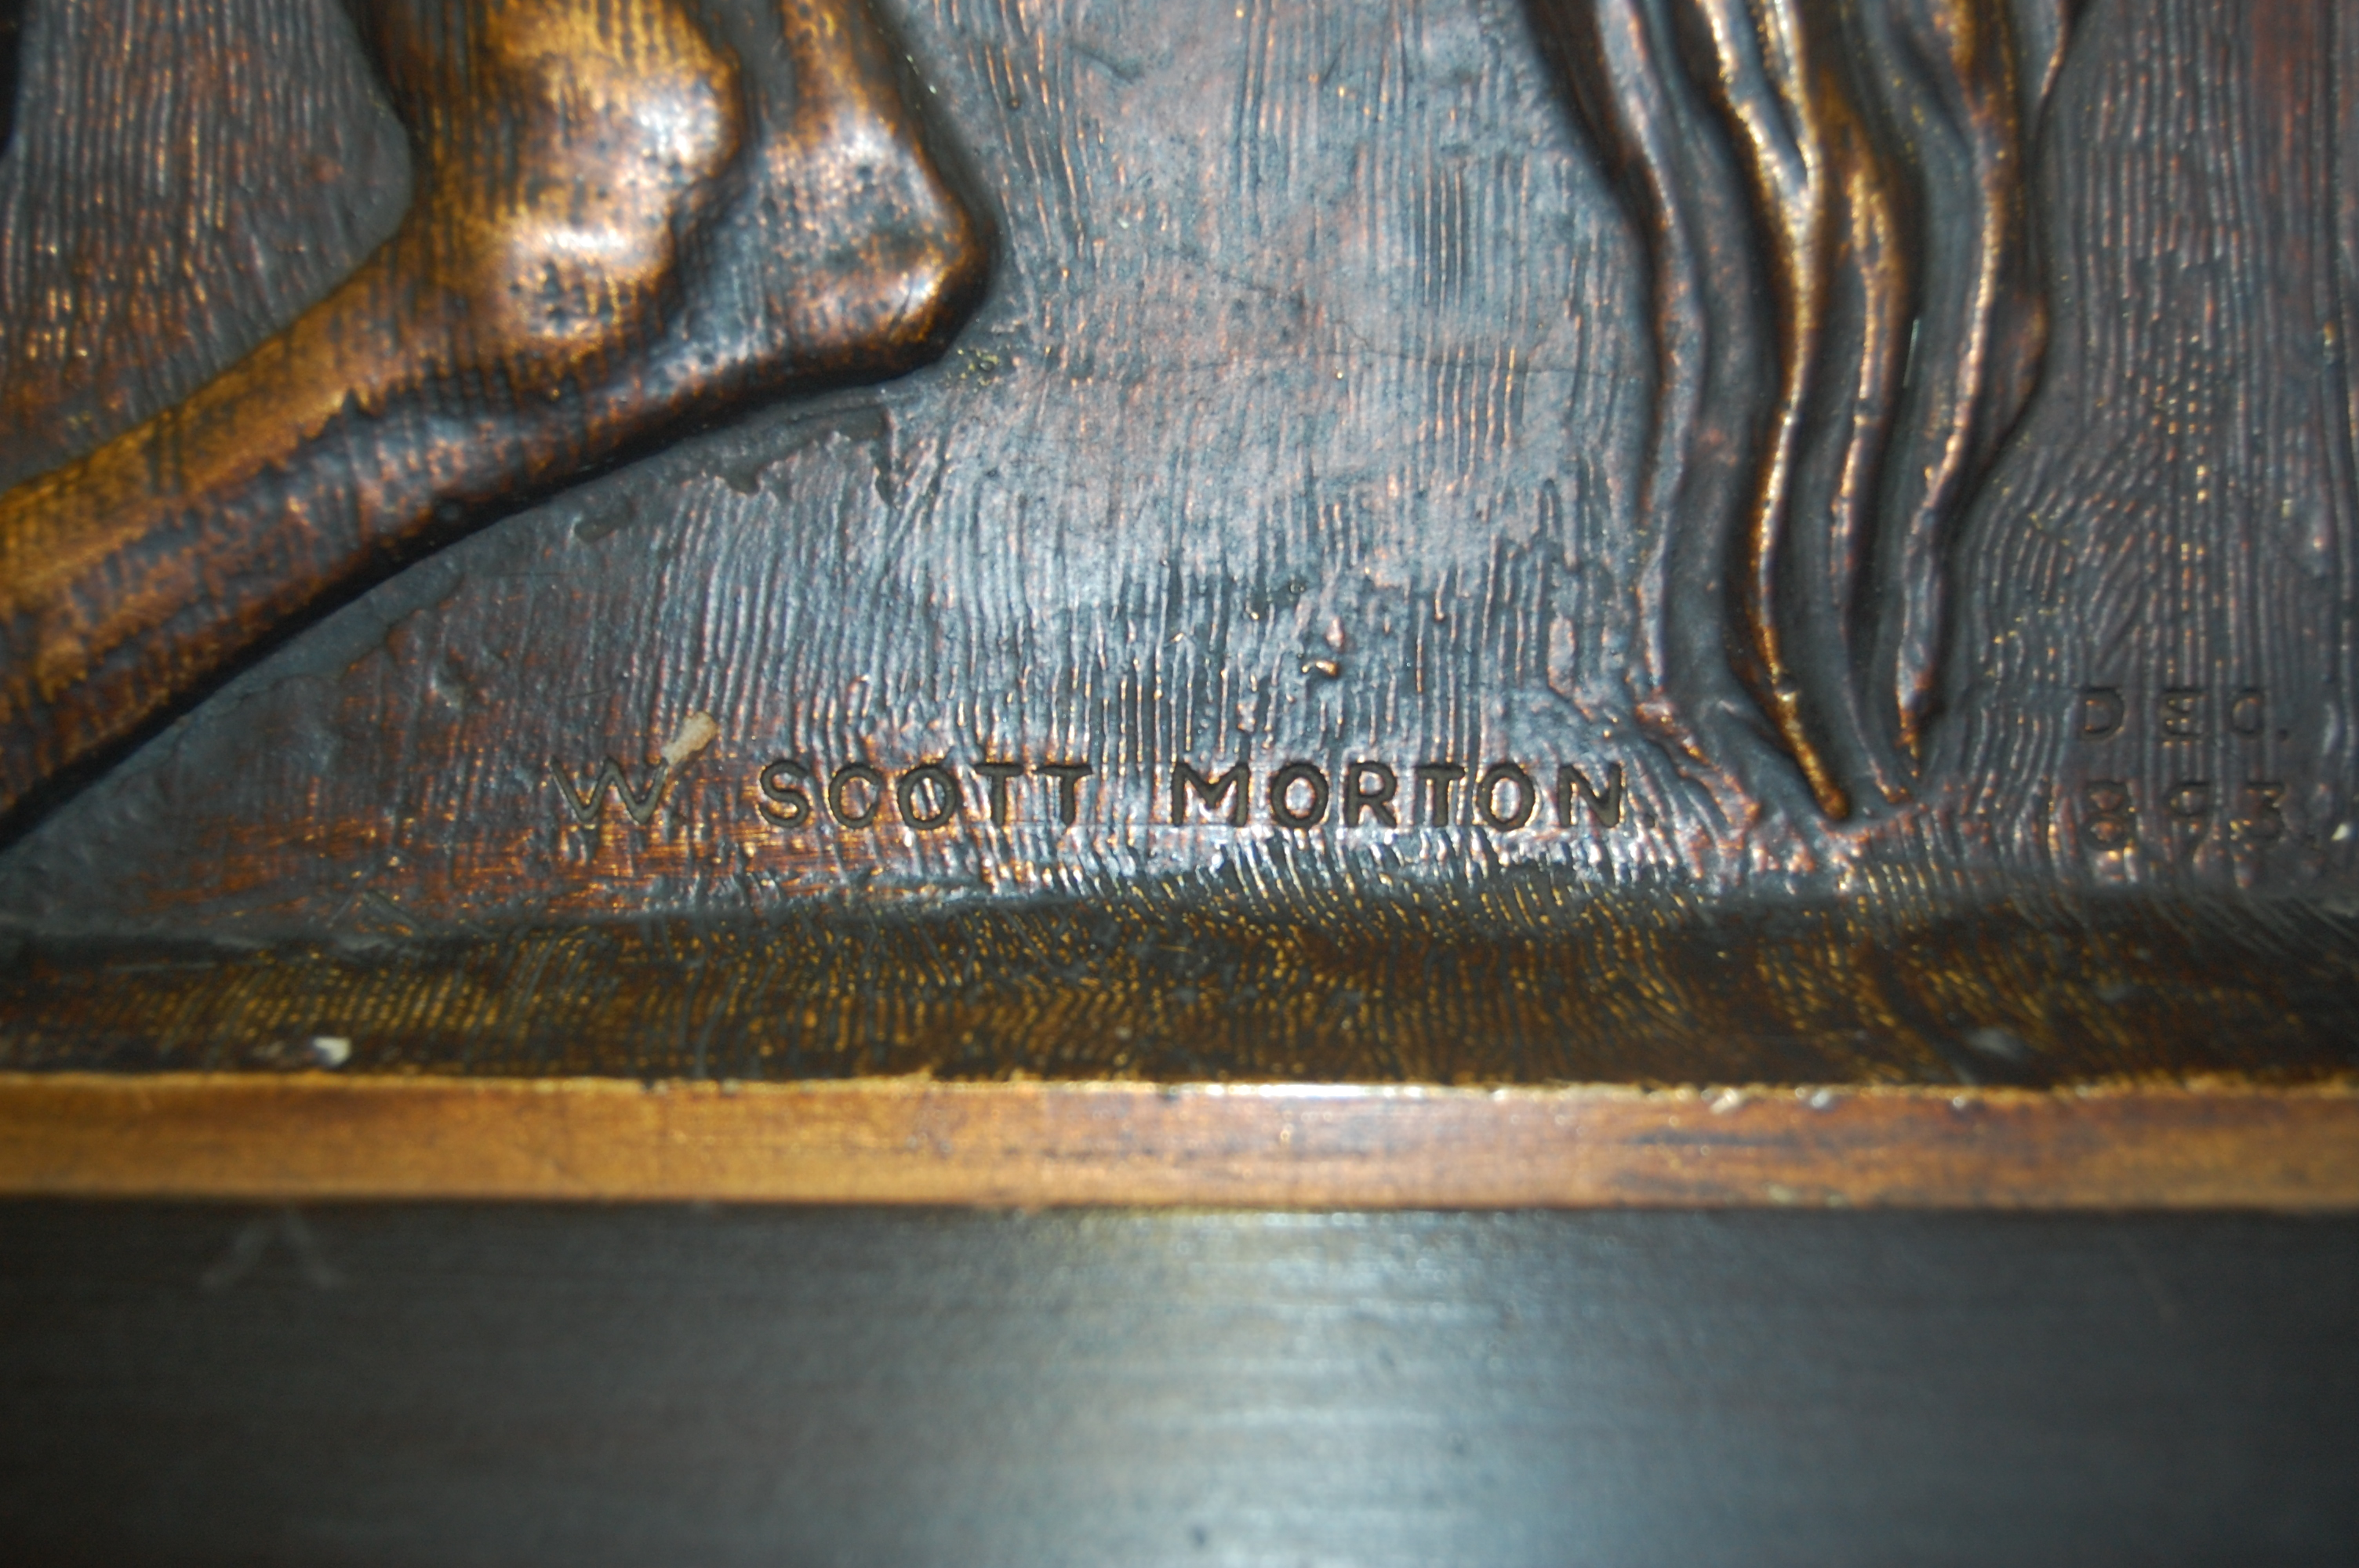 Lot 1020 - W. Scott Morton - relief panel, signed and dated 1893 lower right, 62 x 93cm